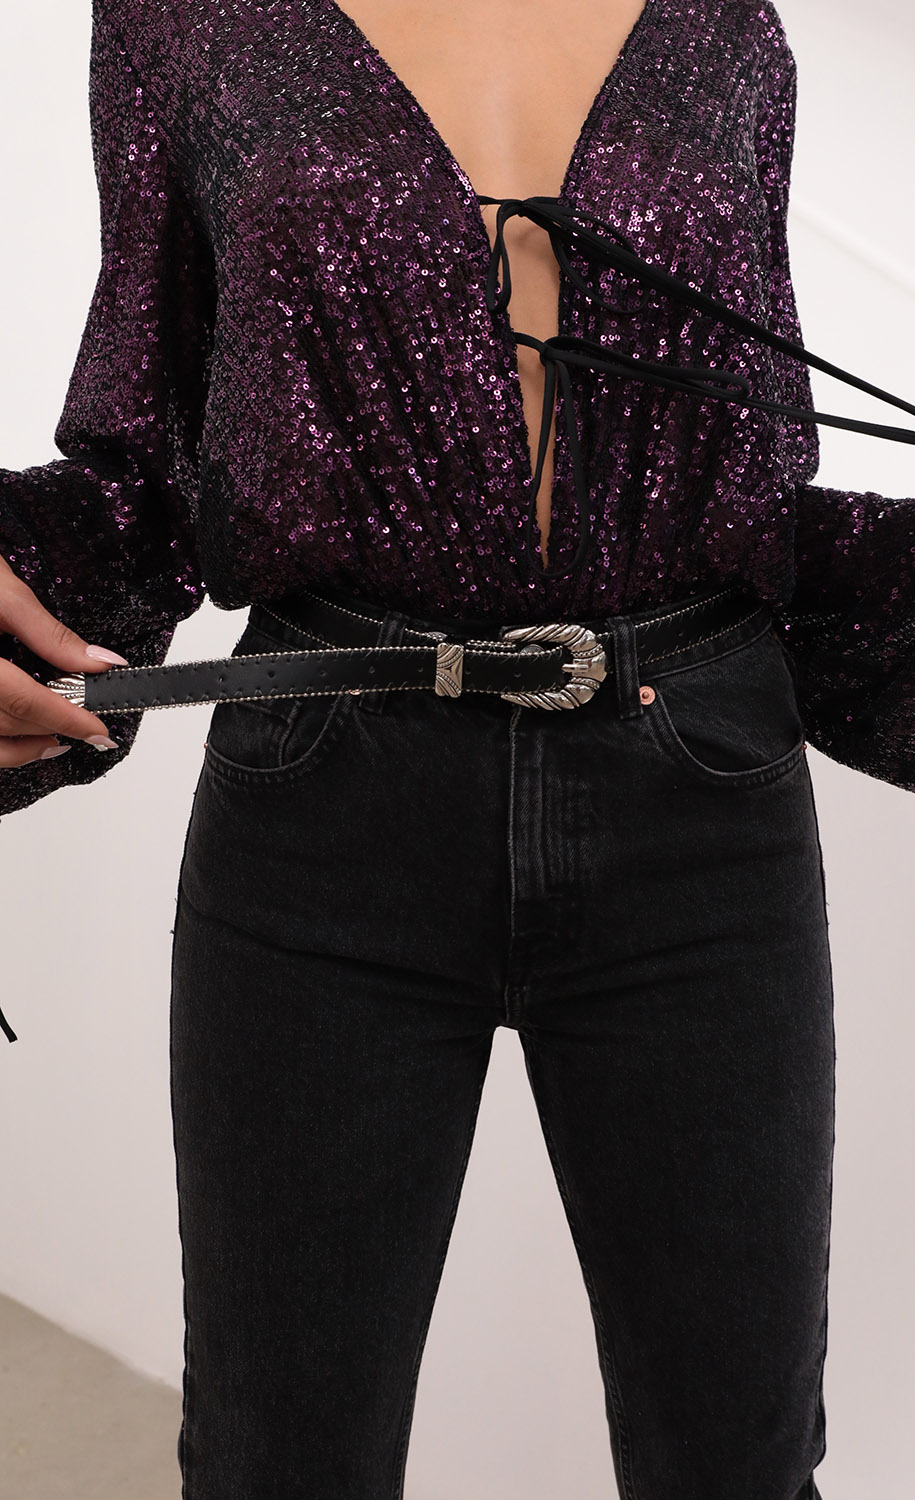 Boho Belt in Black